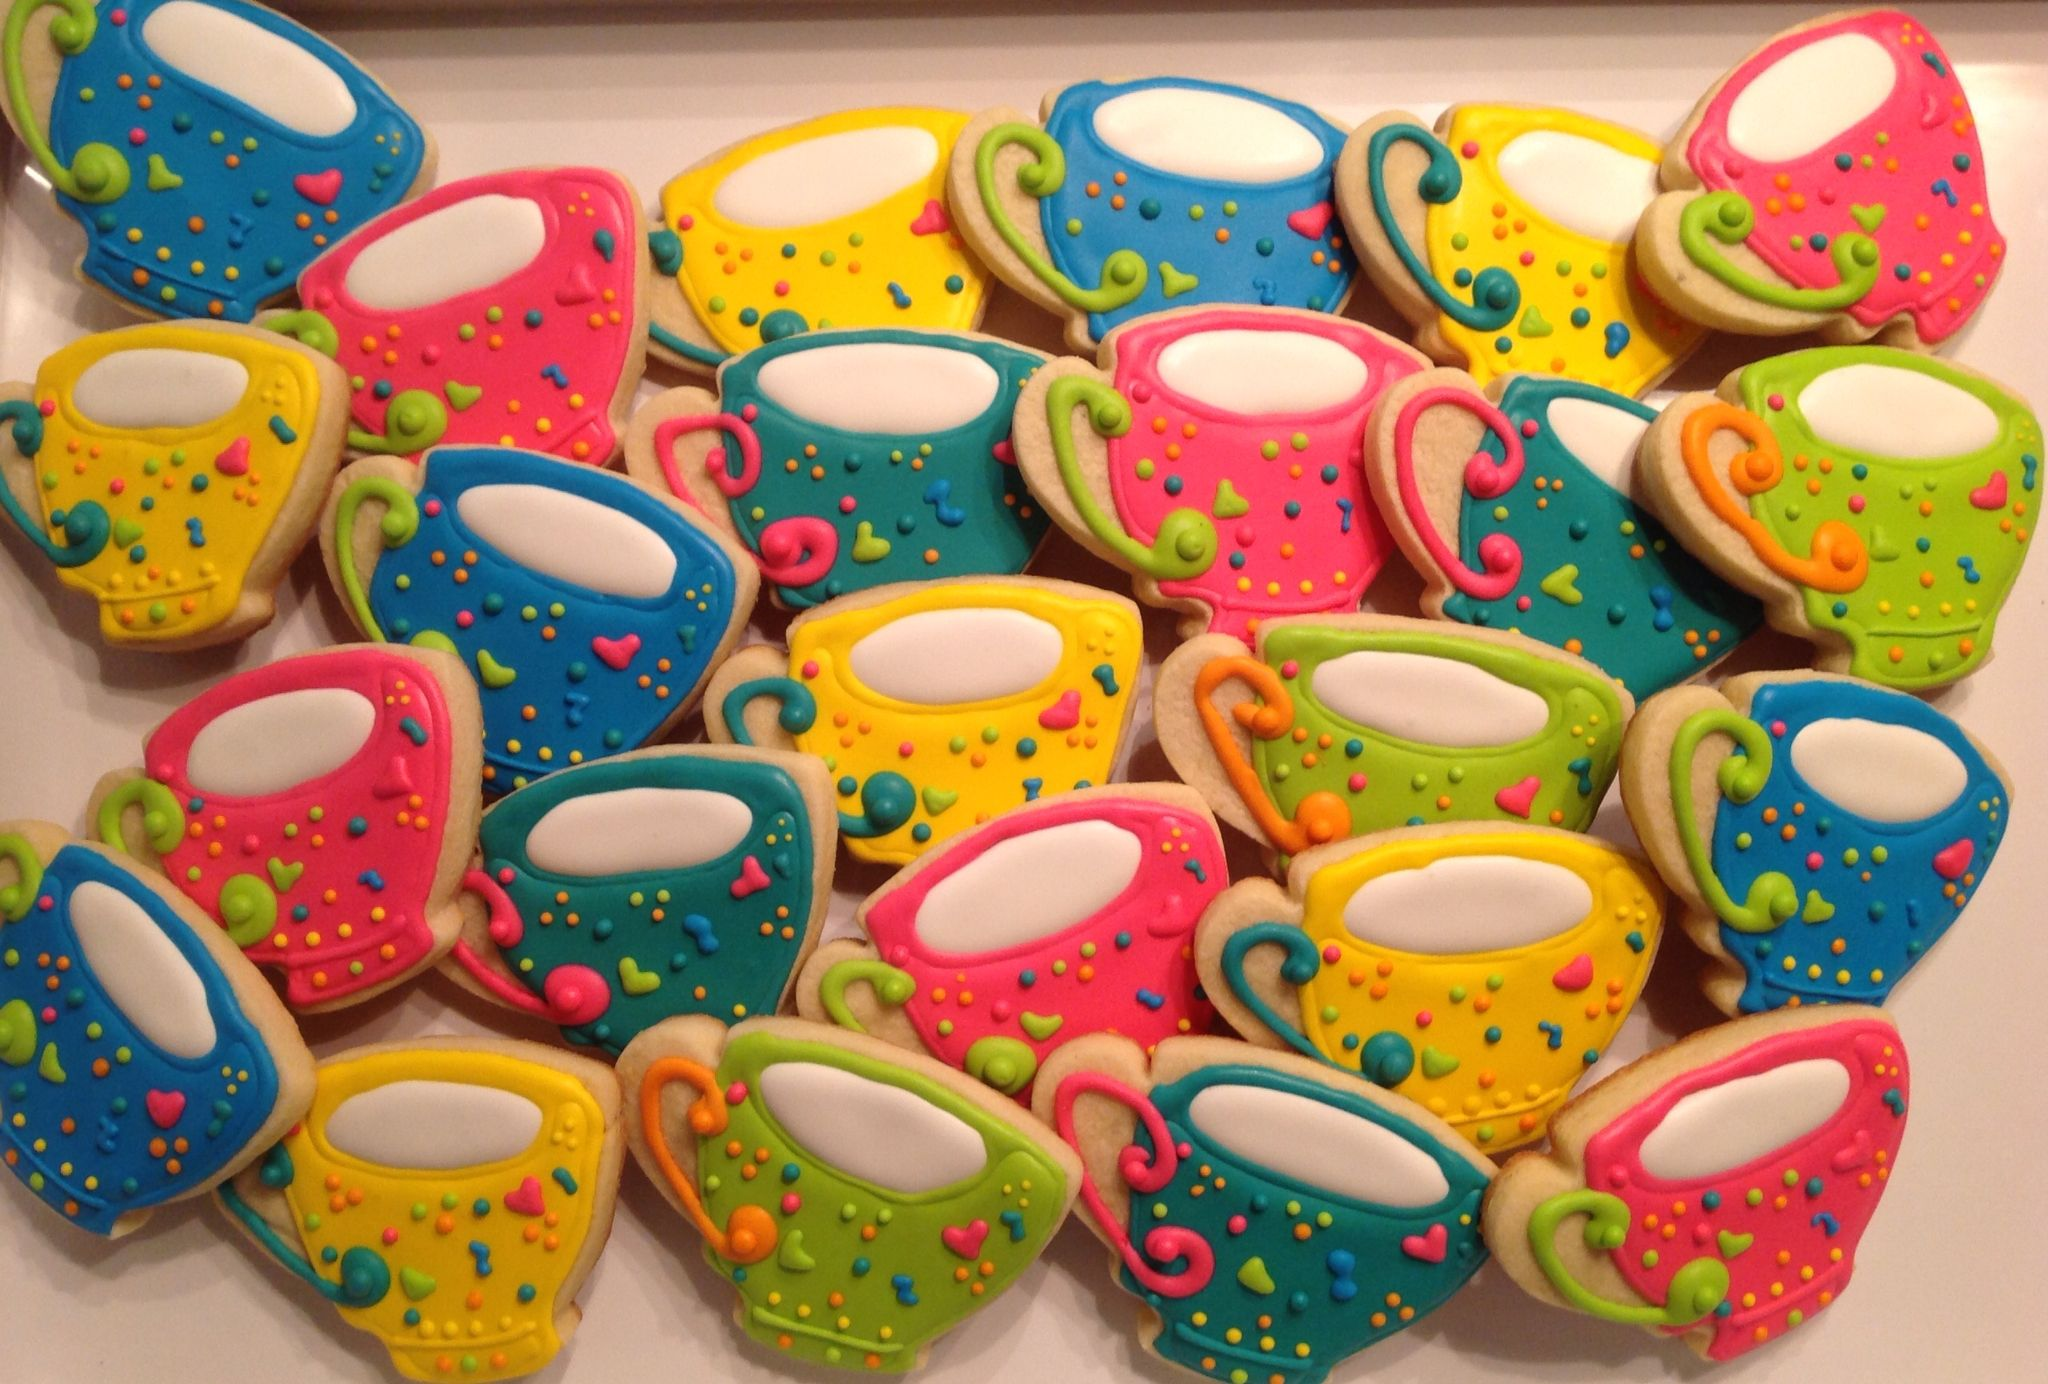 Colorful Tea Cups Decorated Sugar Cookies by I Am the Cookie Lady